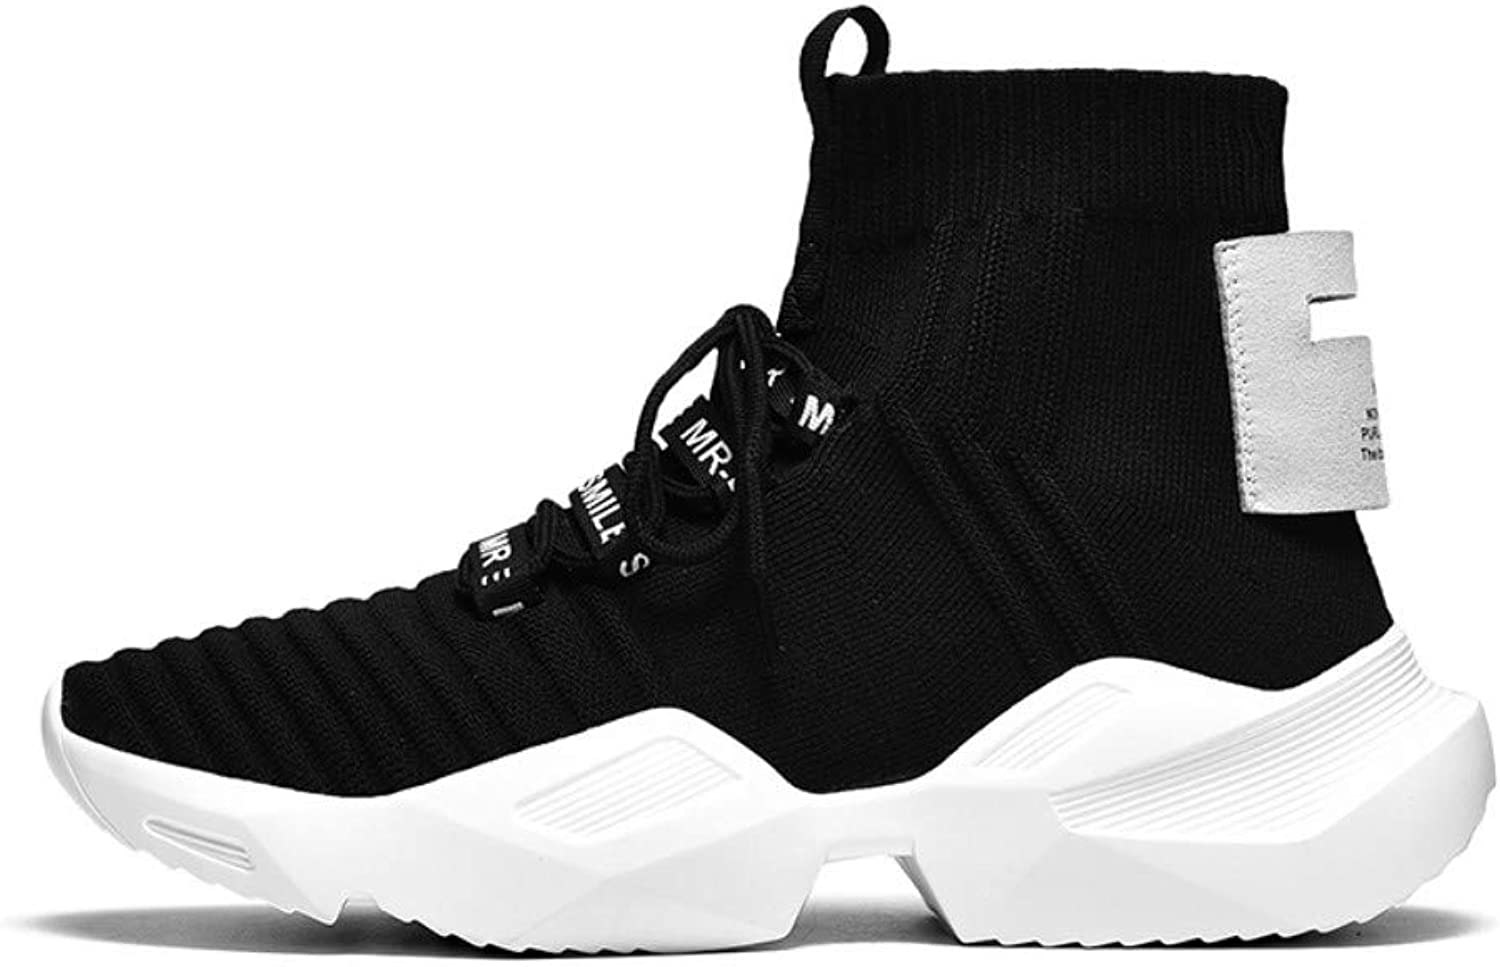 YYAMO shoes Sport shoes High-Top Socks shoes Tide Couple shoes Breathable Casual shoes Riding Travel Gym Jogging Walking Outdoor Running